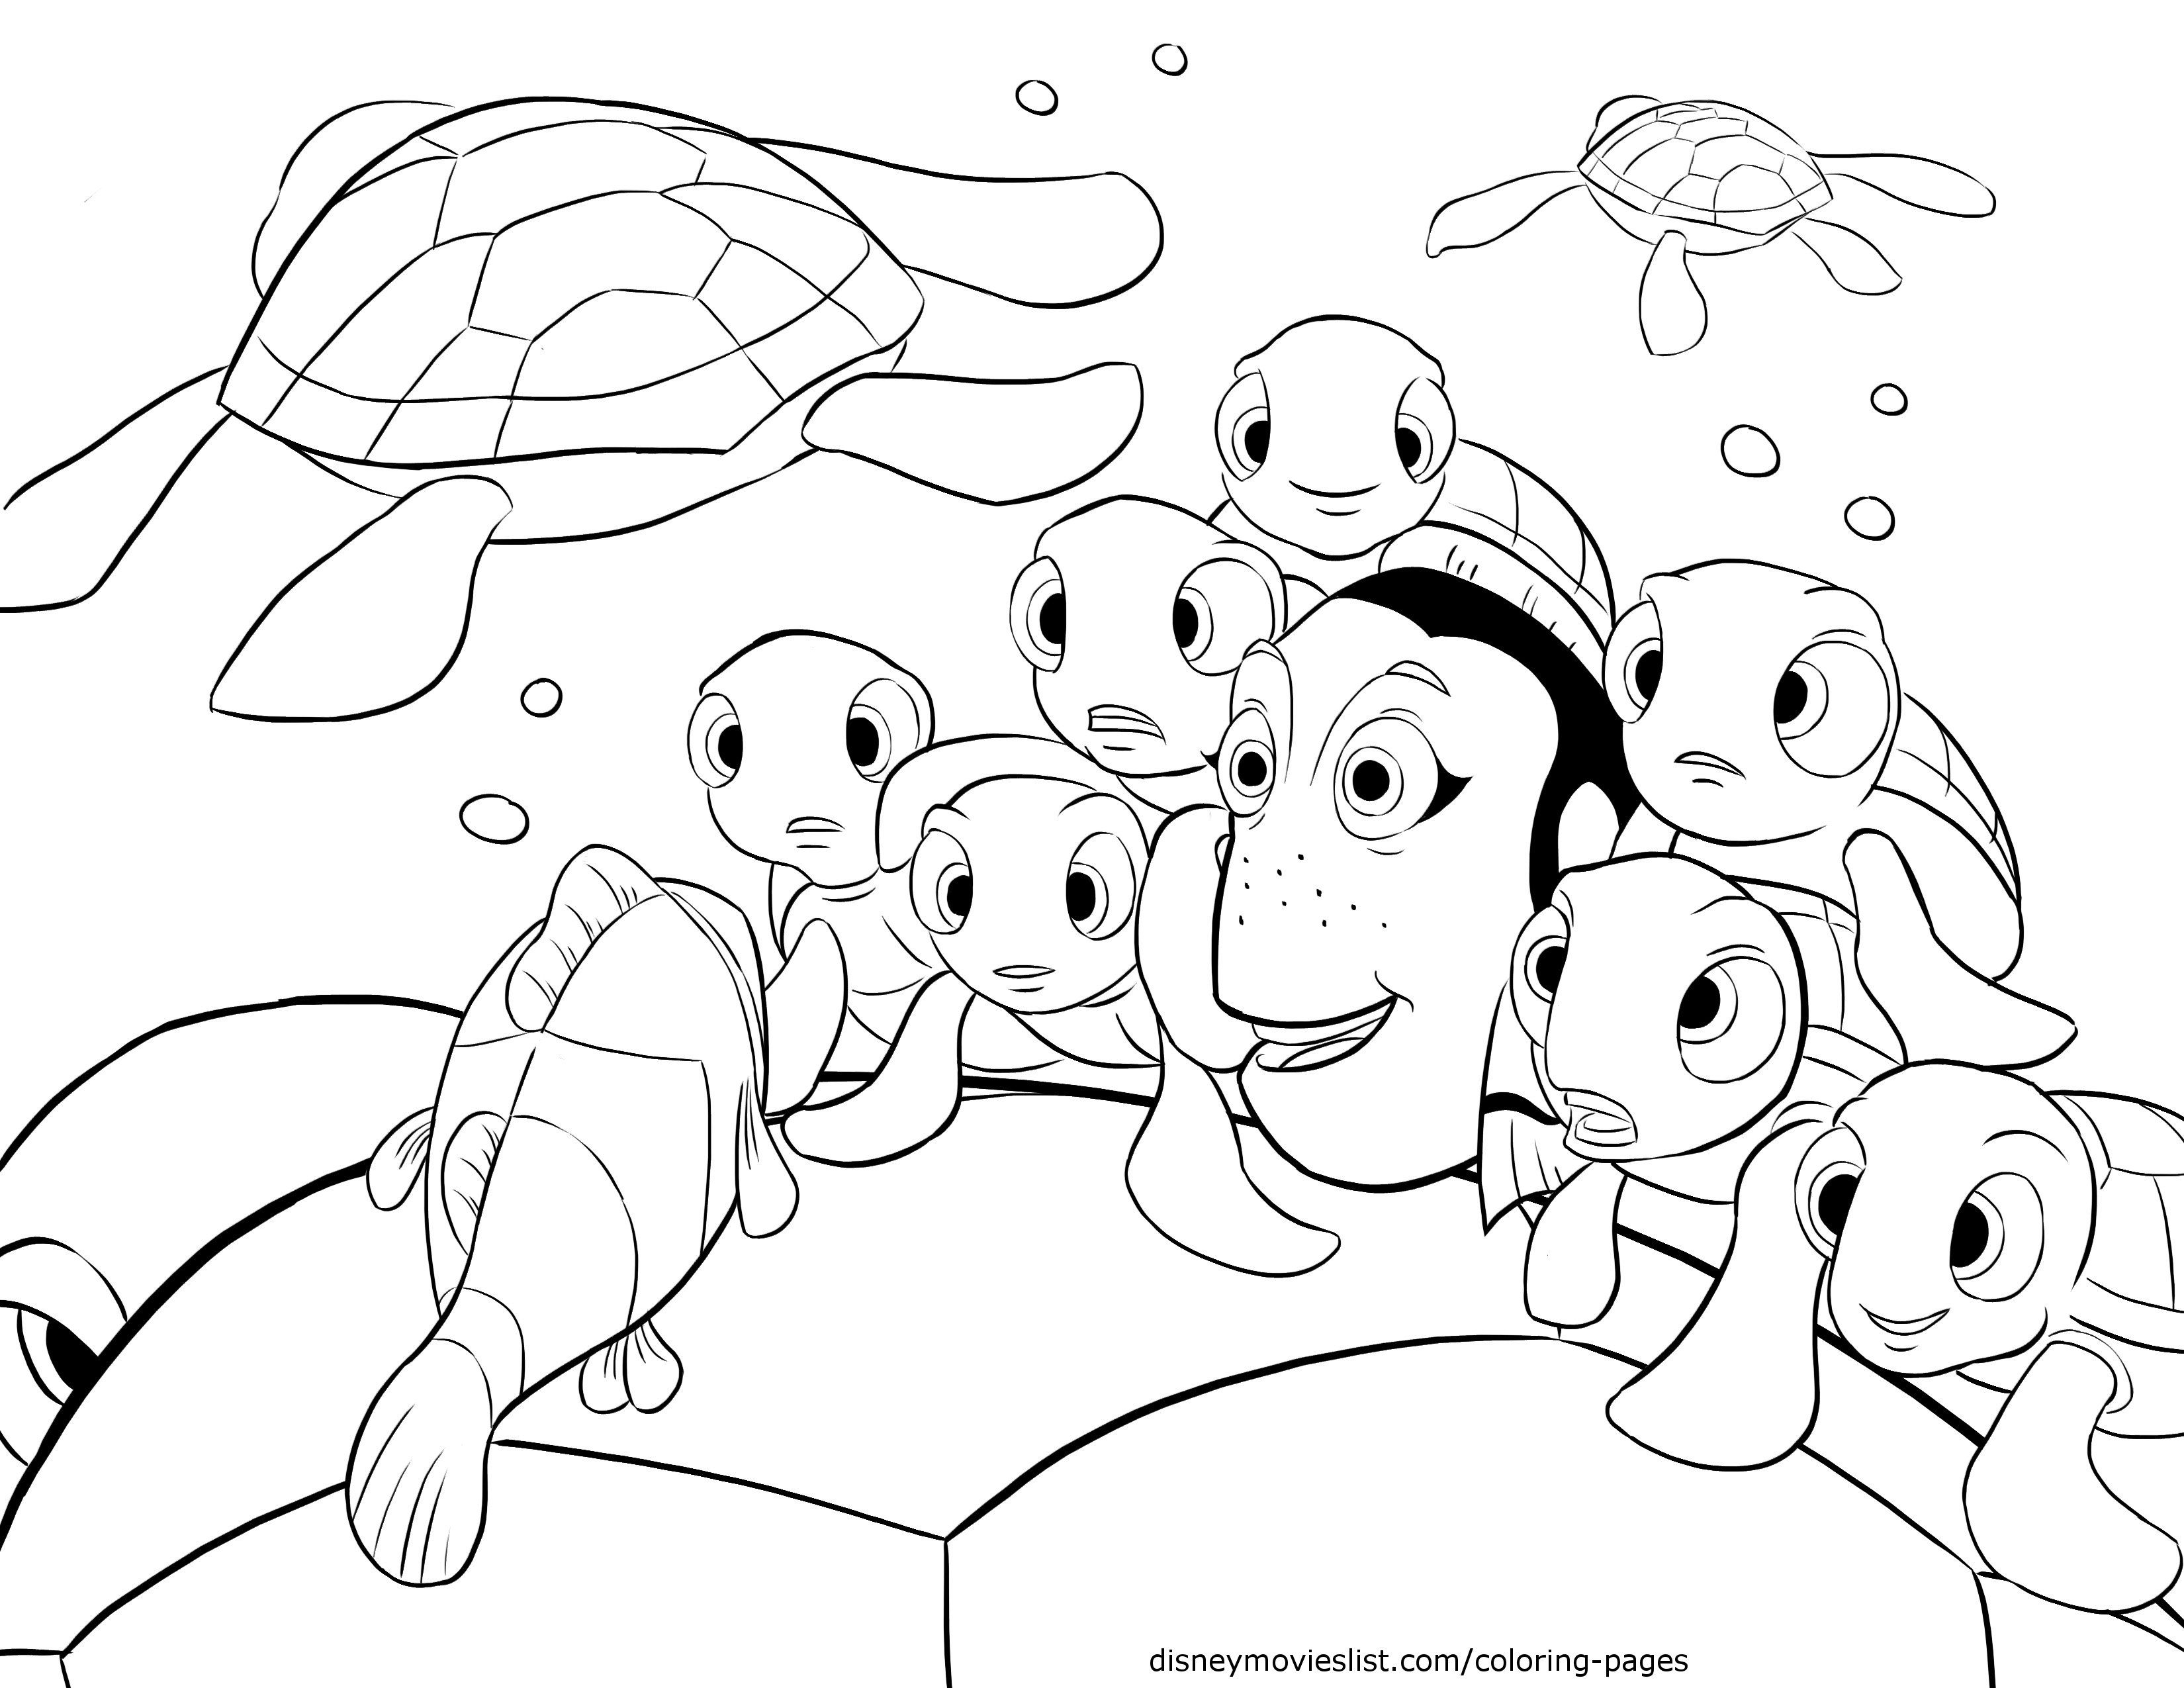 3300x2550 Finding Nemo Pearl Coloring Pages To Print Coloring Sheets